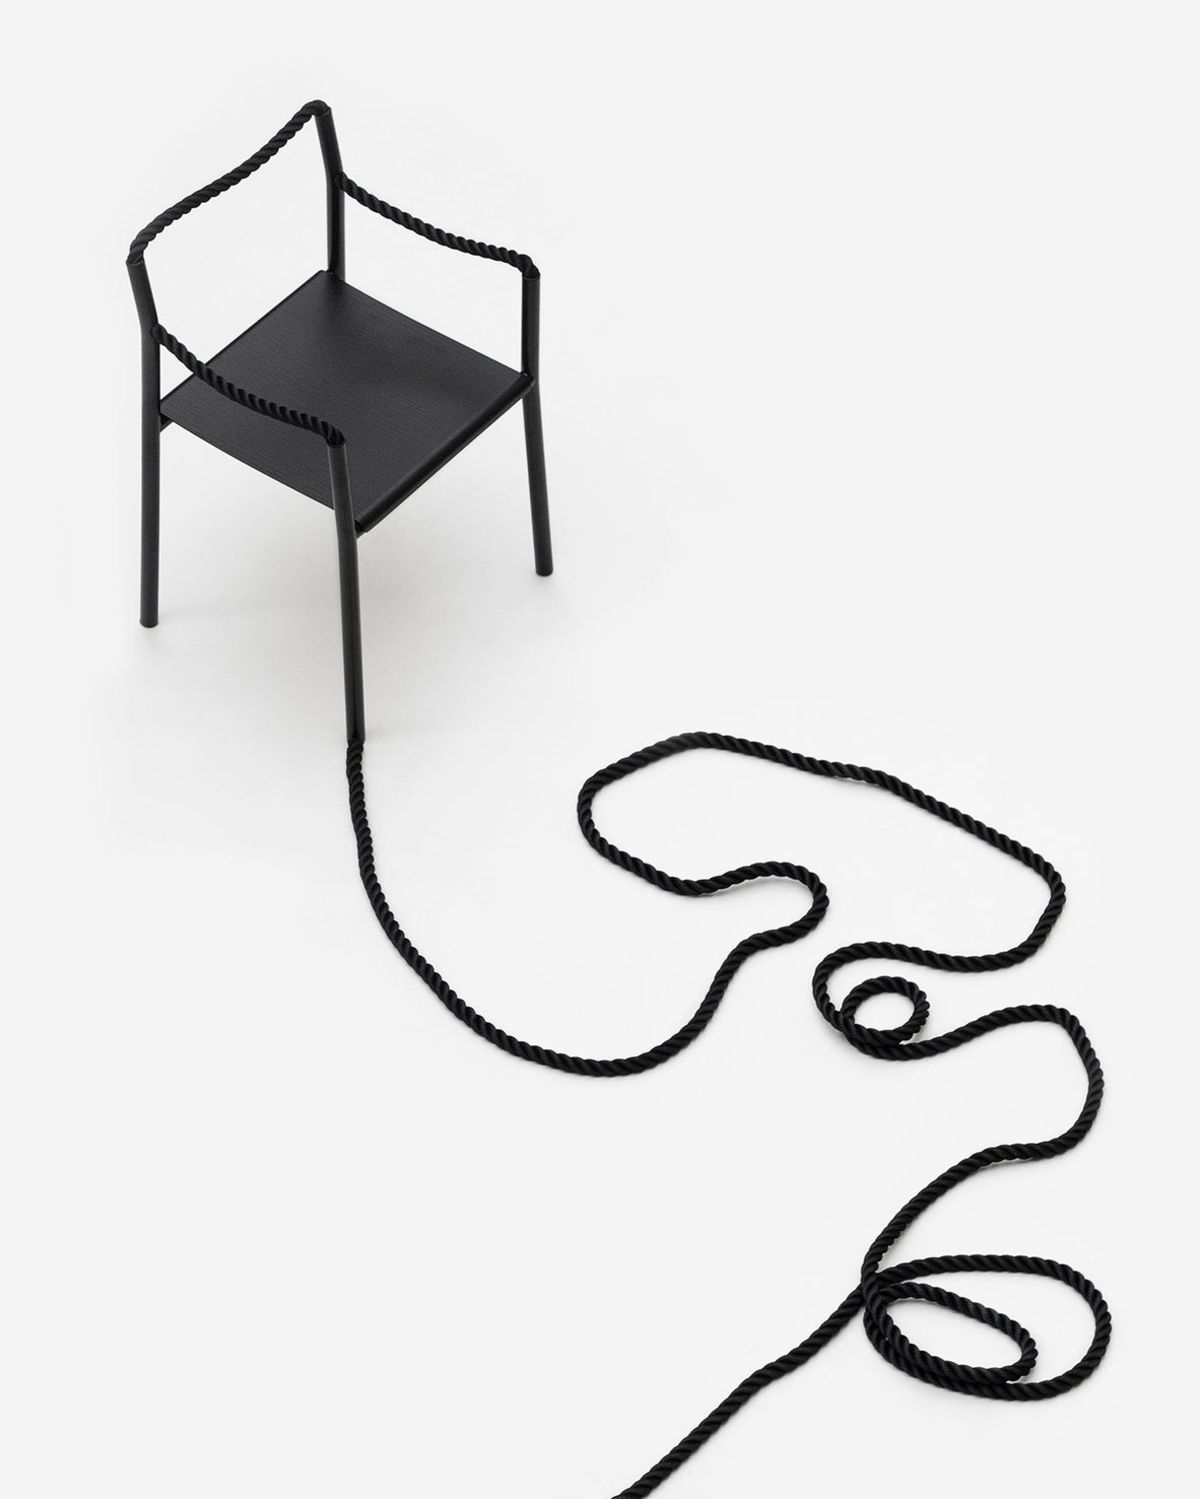 Rope_Chair_06_web